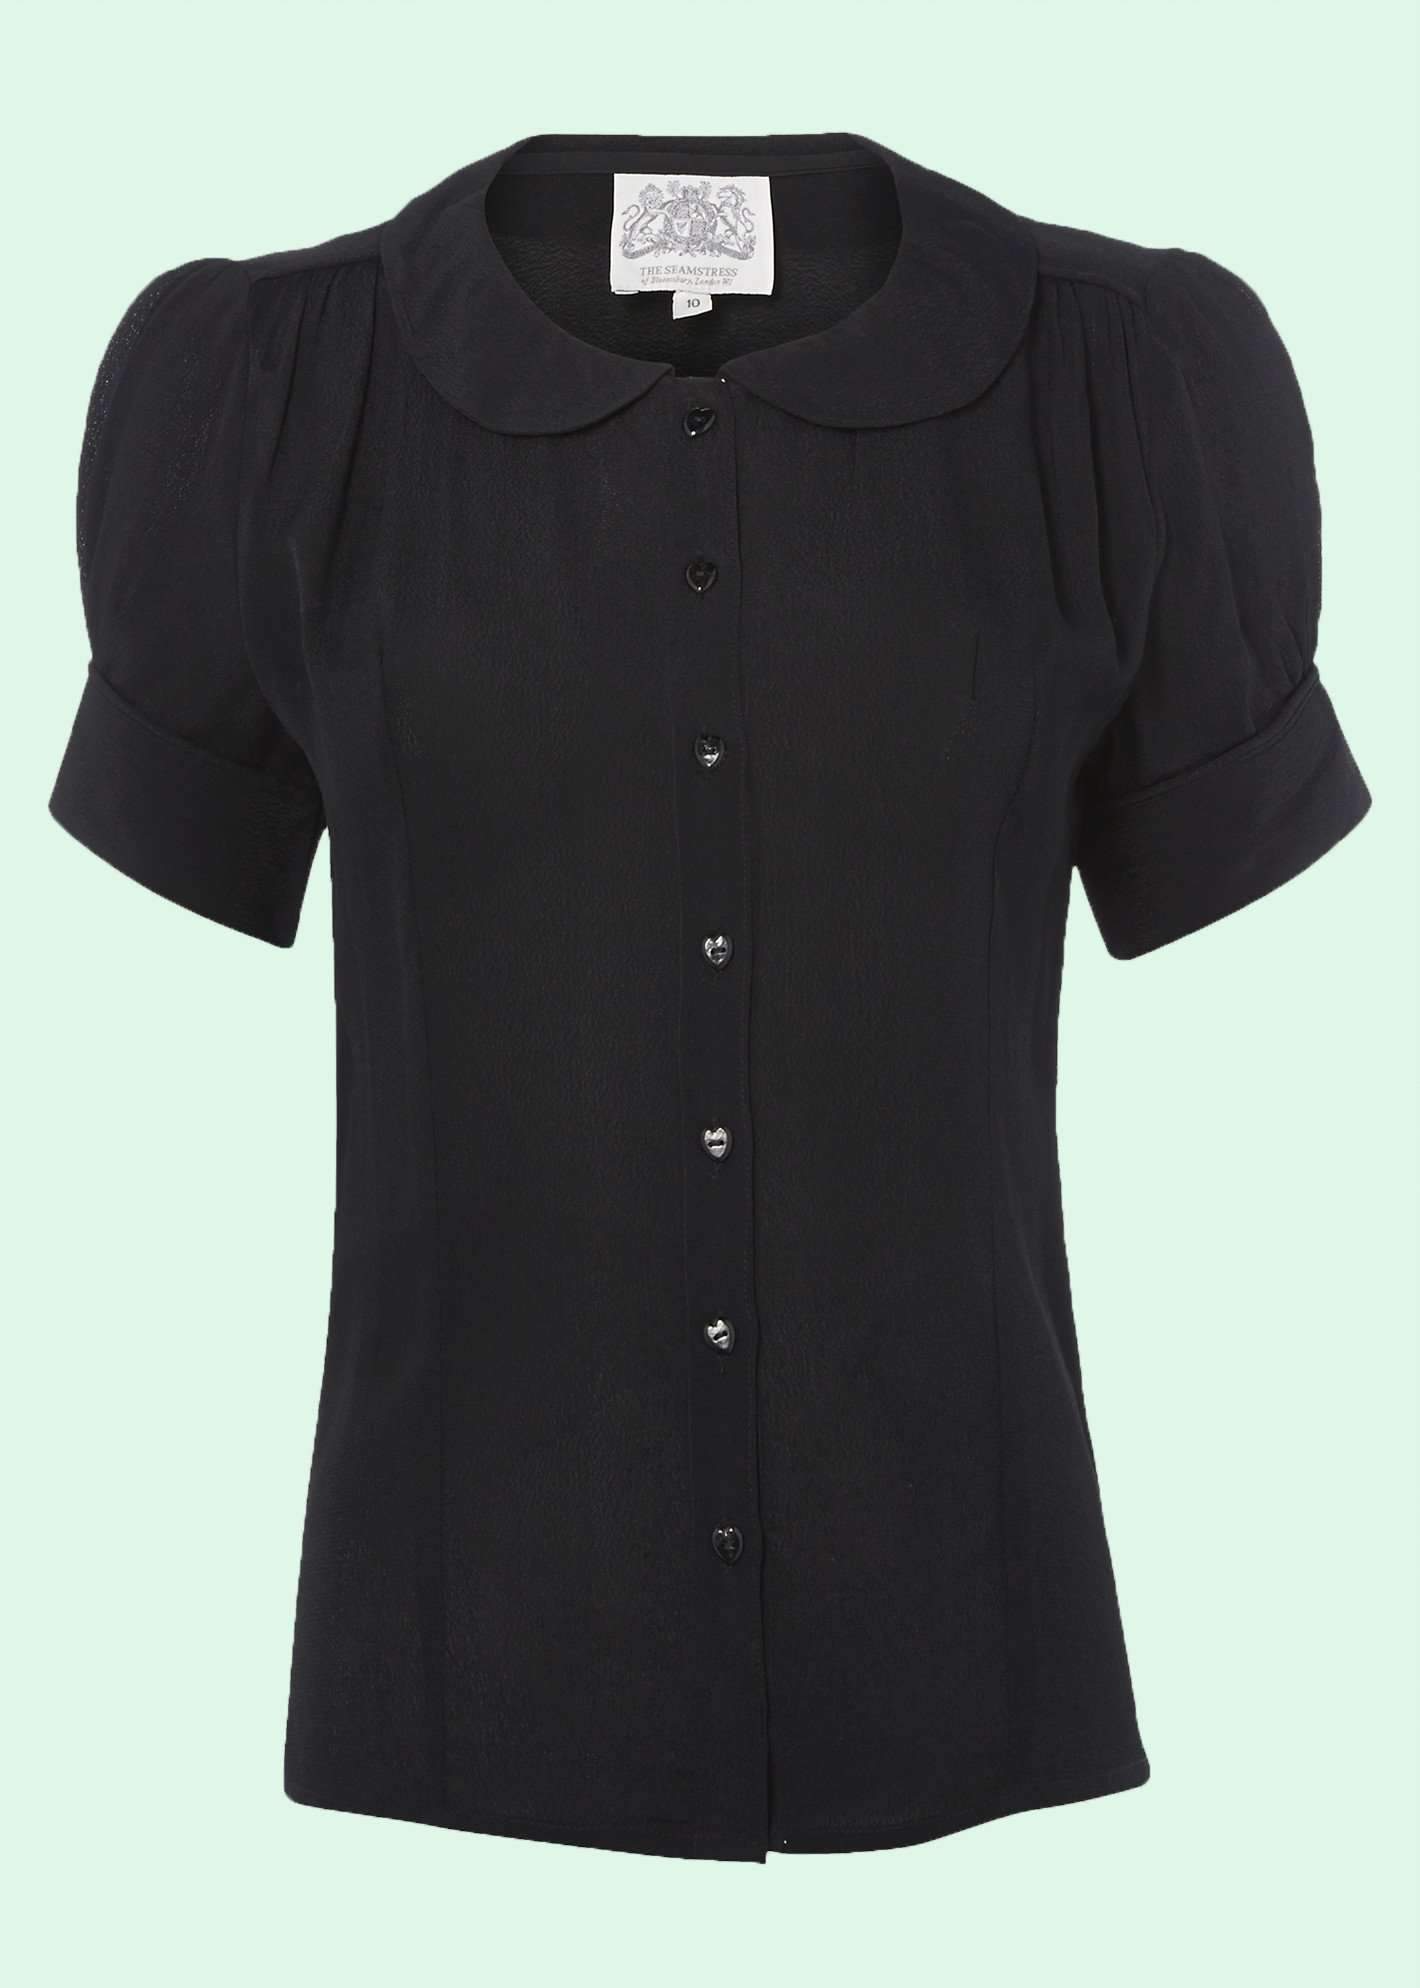 1950s shirt in black